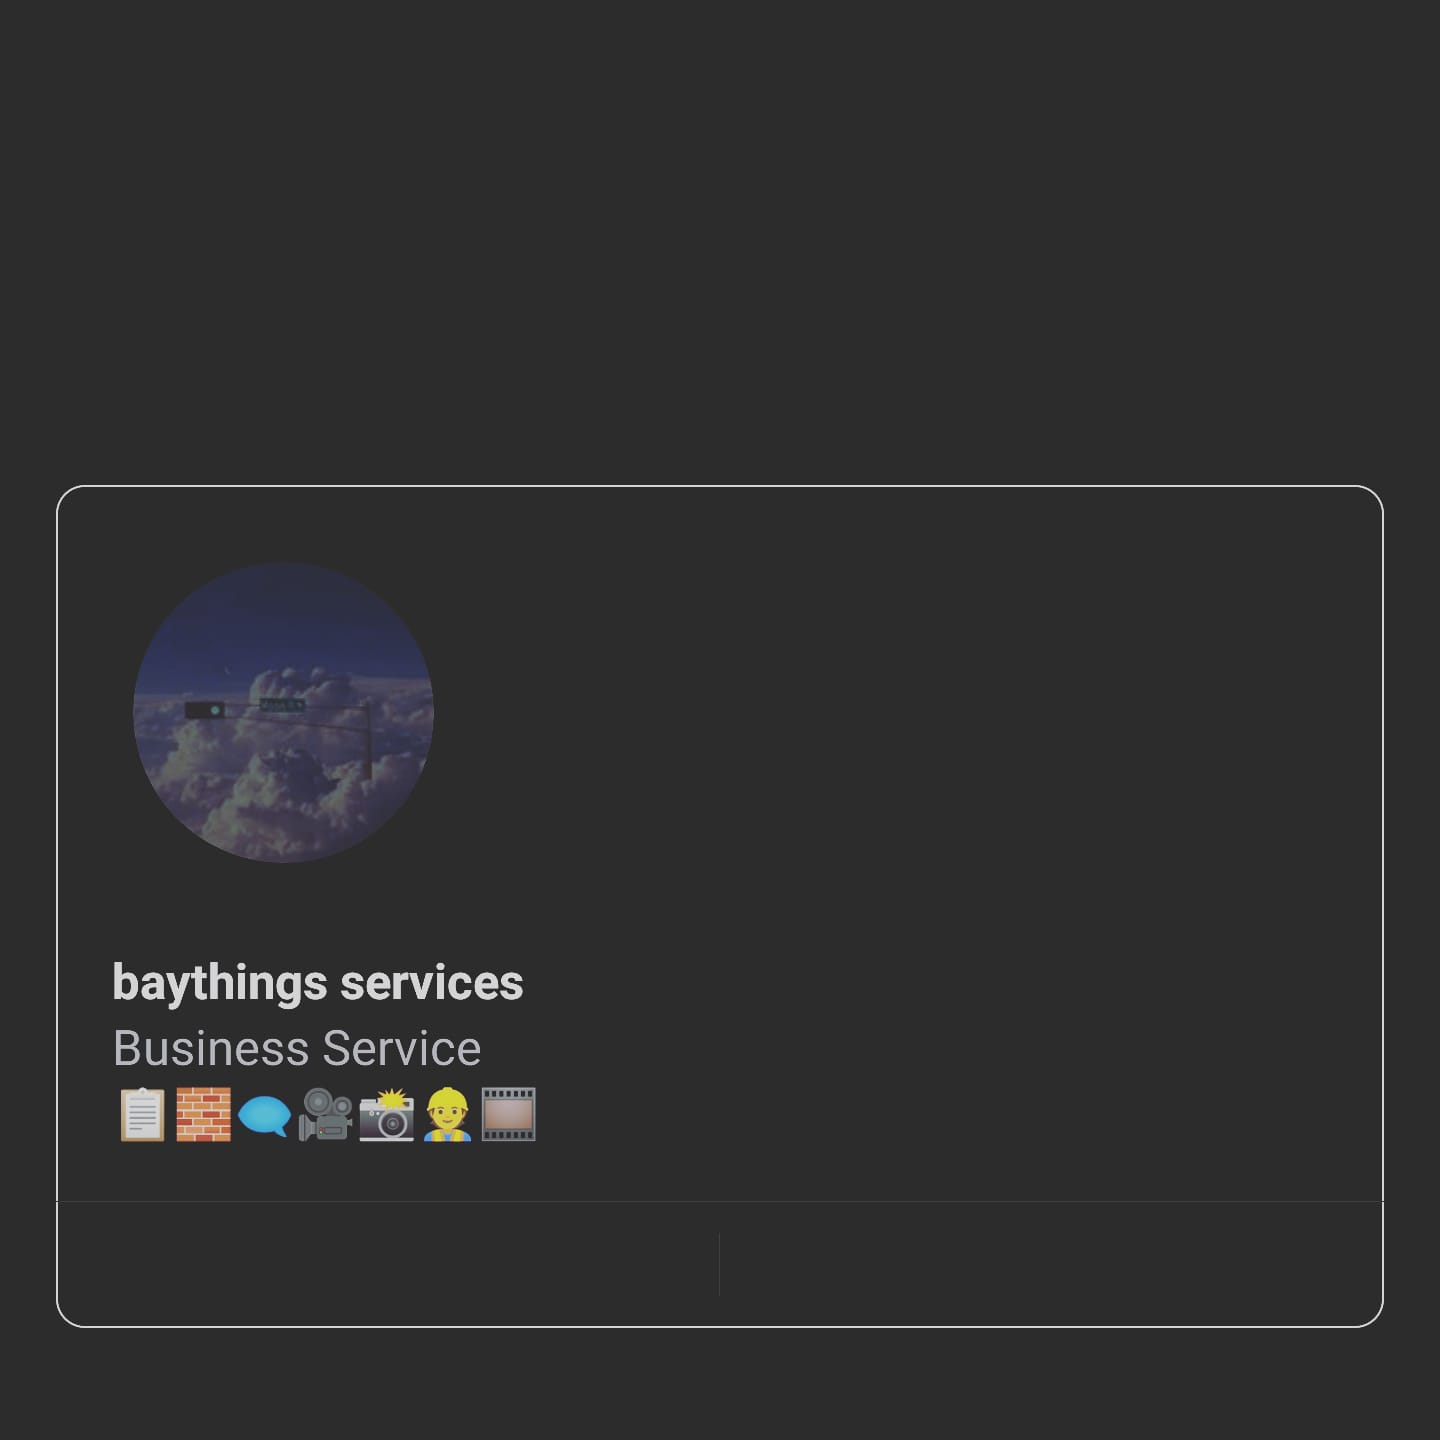 Baythings services logo